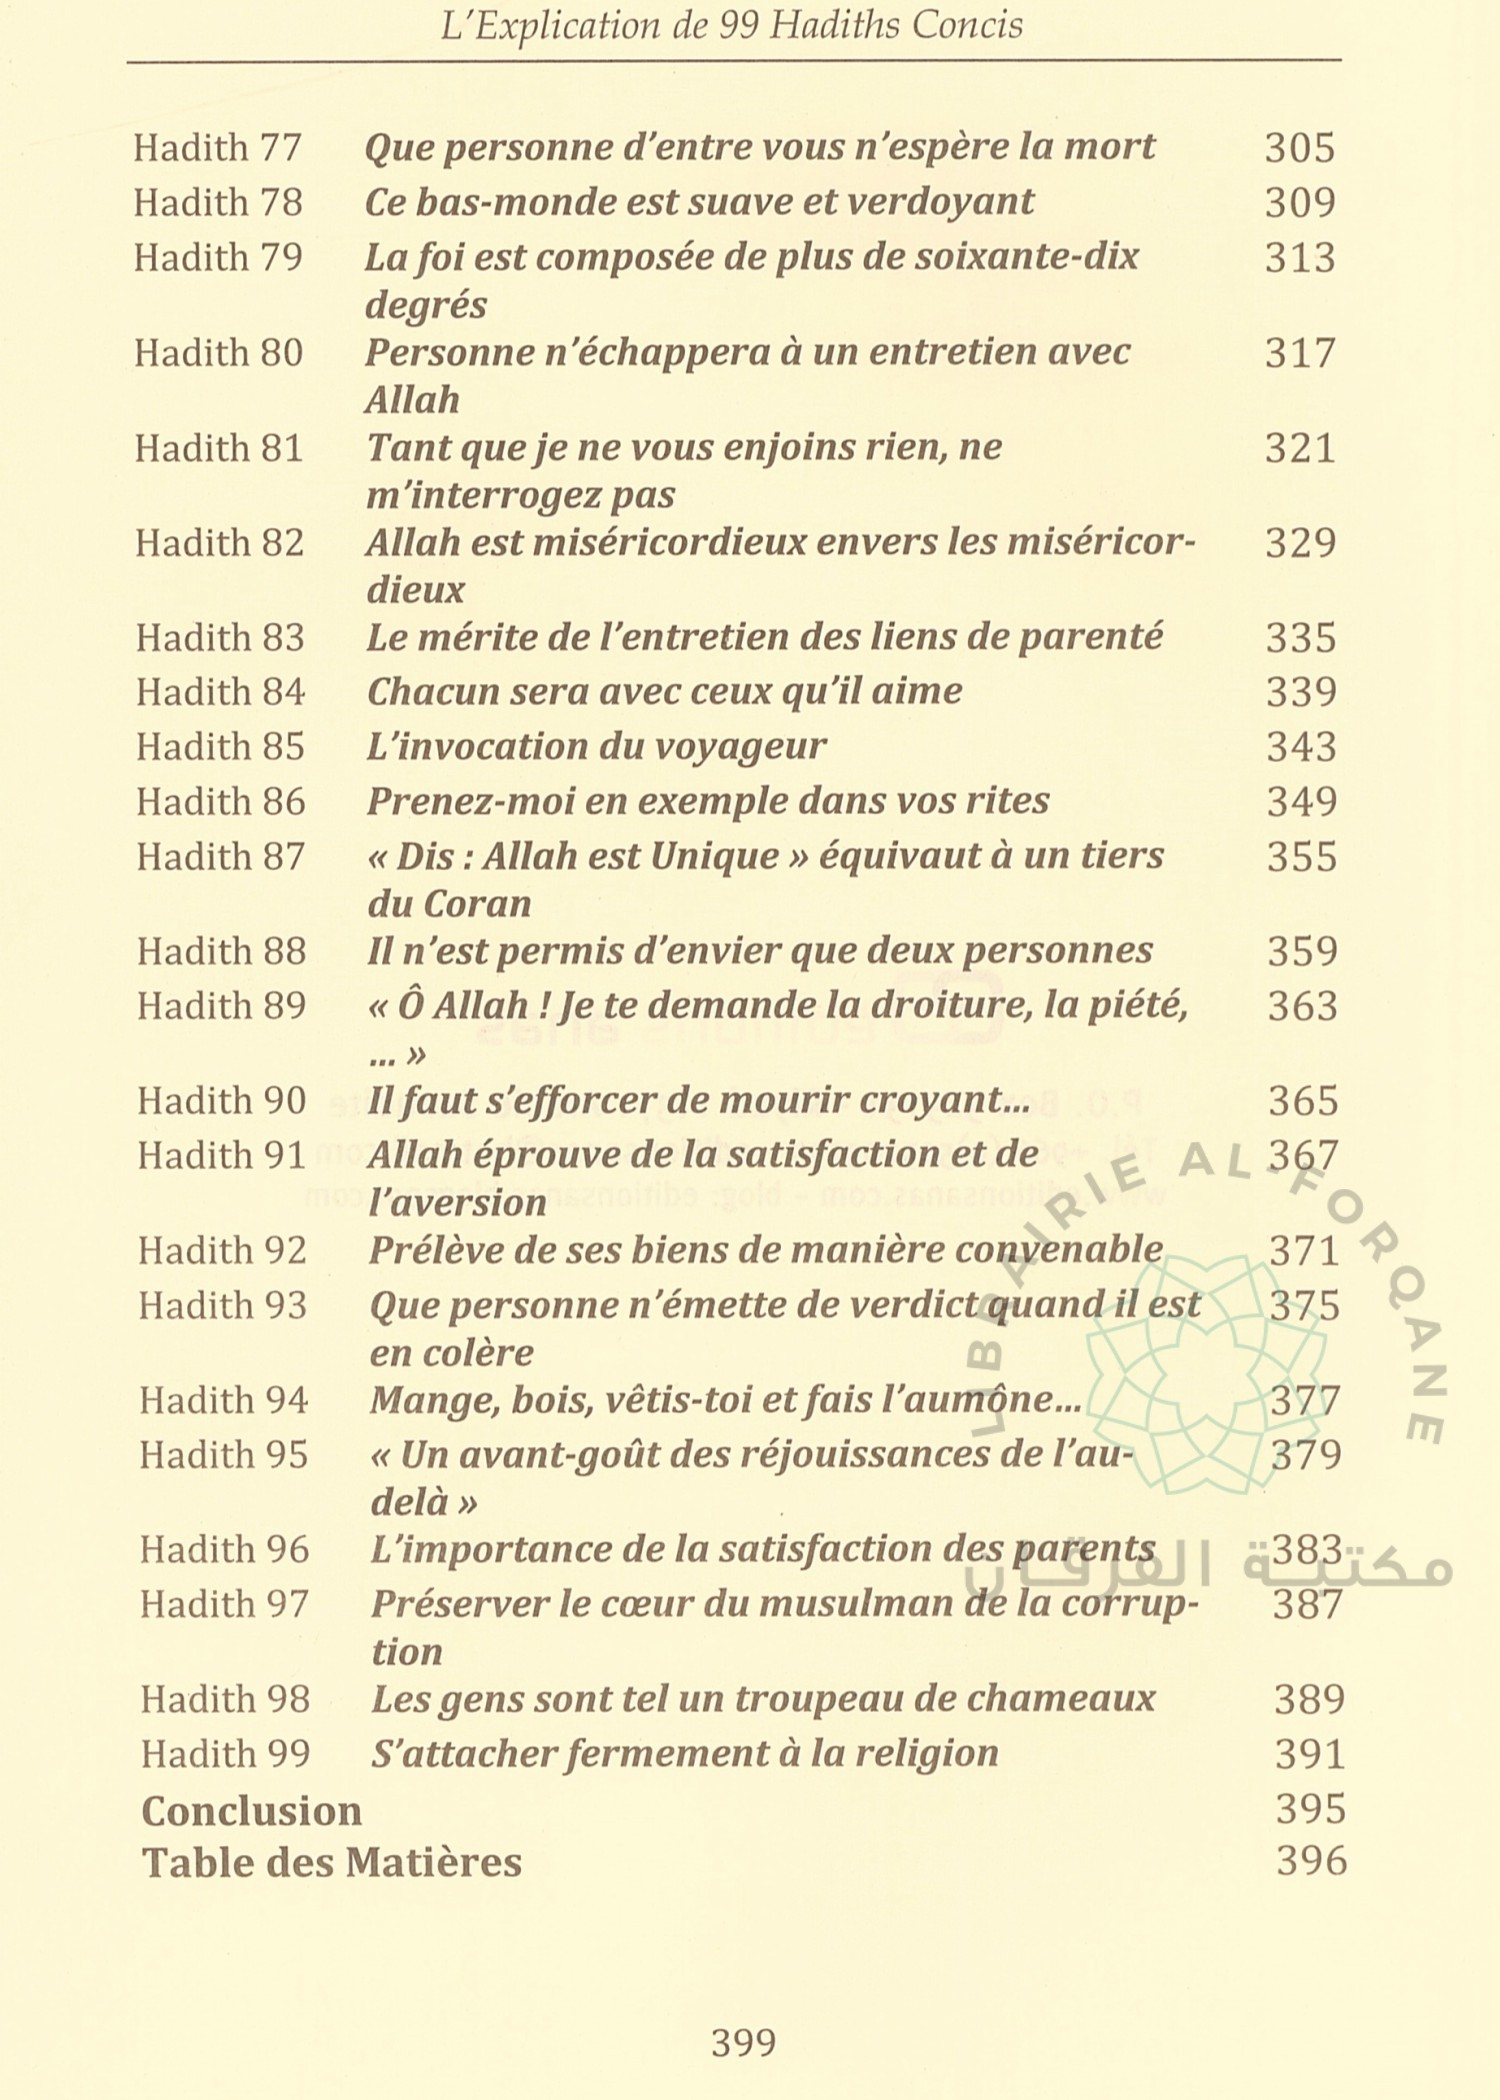 lexplication de 99 hadiths concis